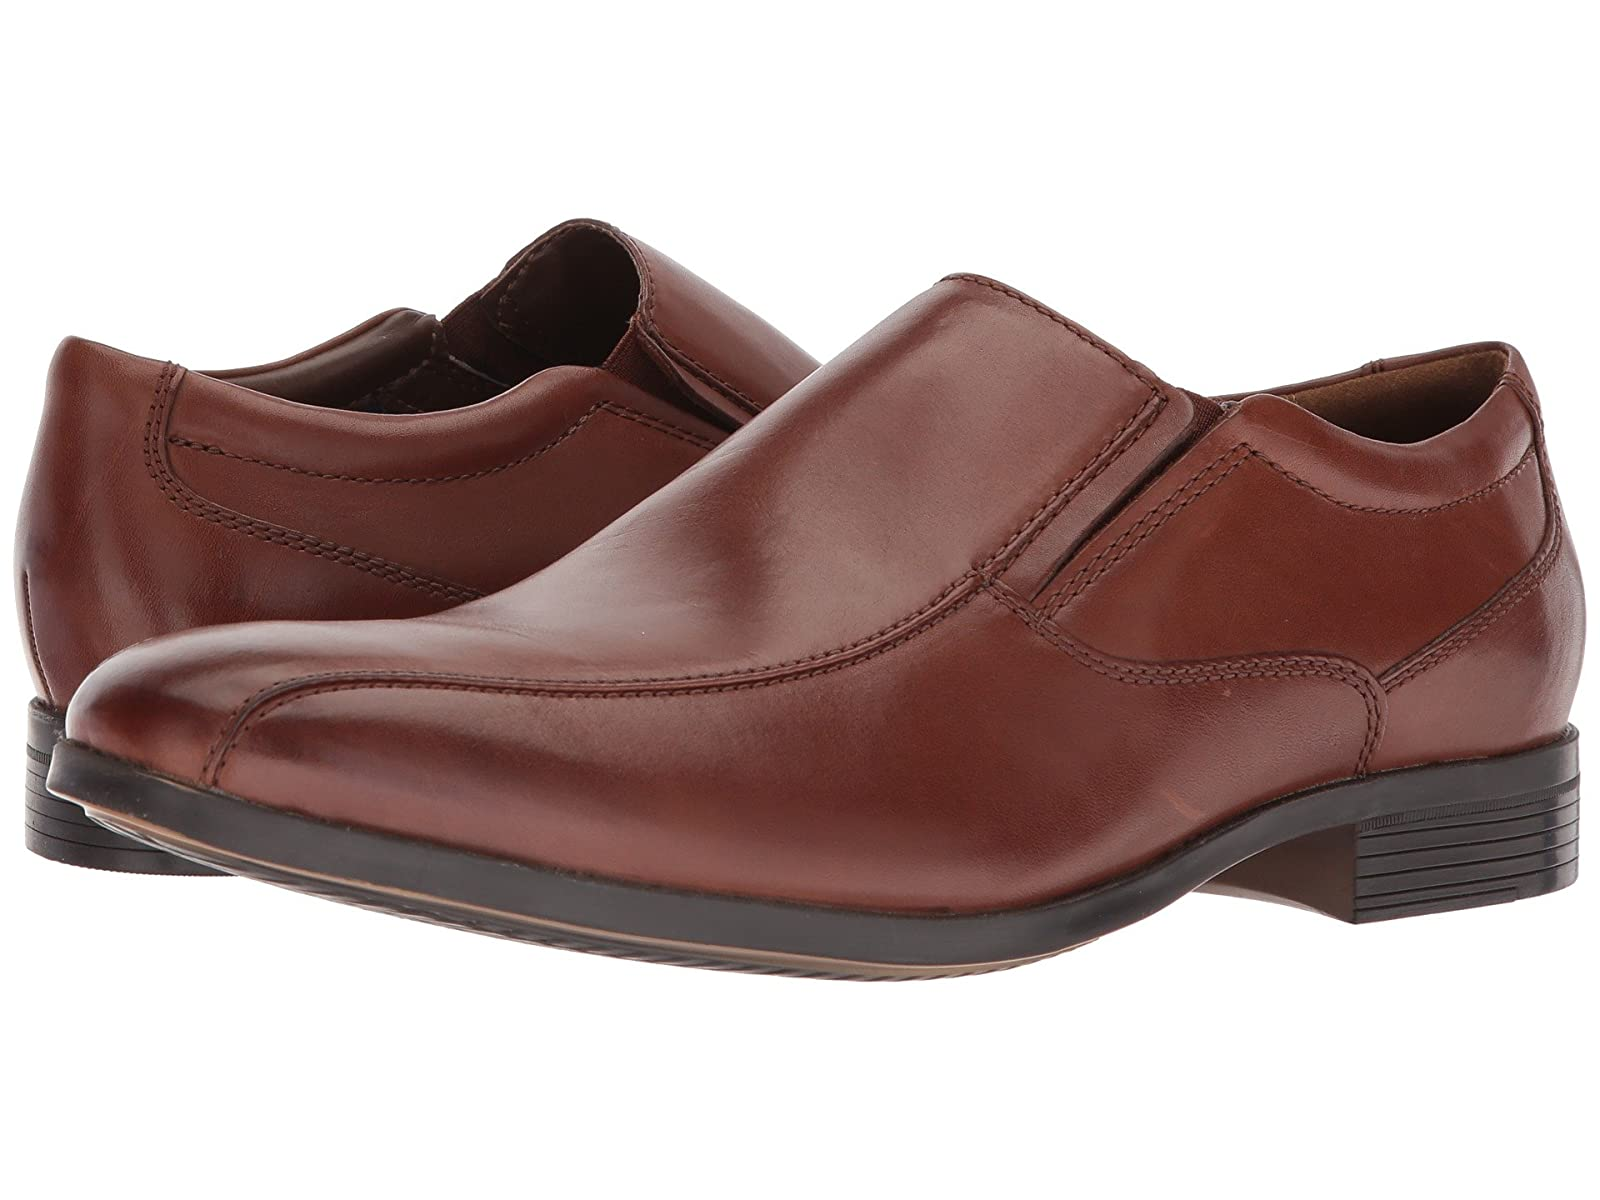 Clarks Conwell StepCheap and distinctive eye-catching shoes